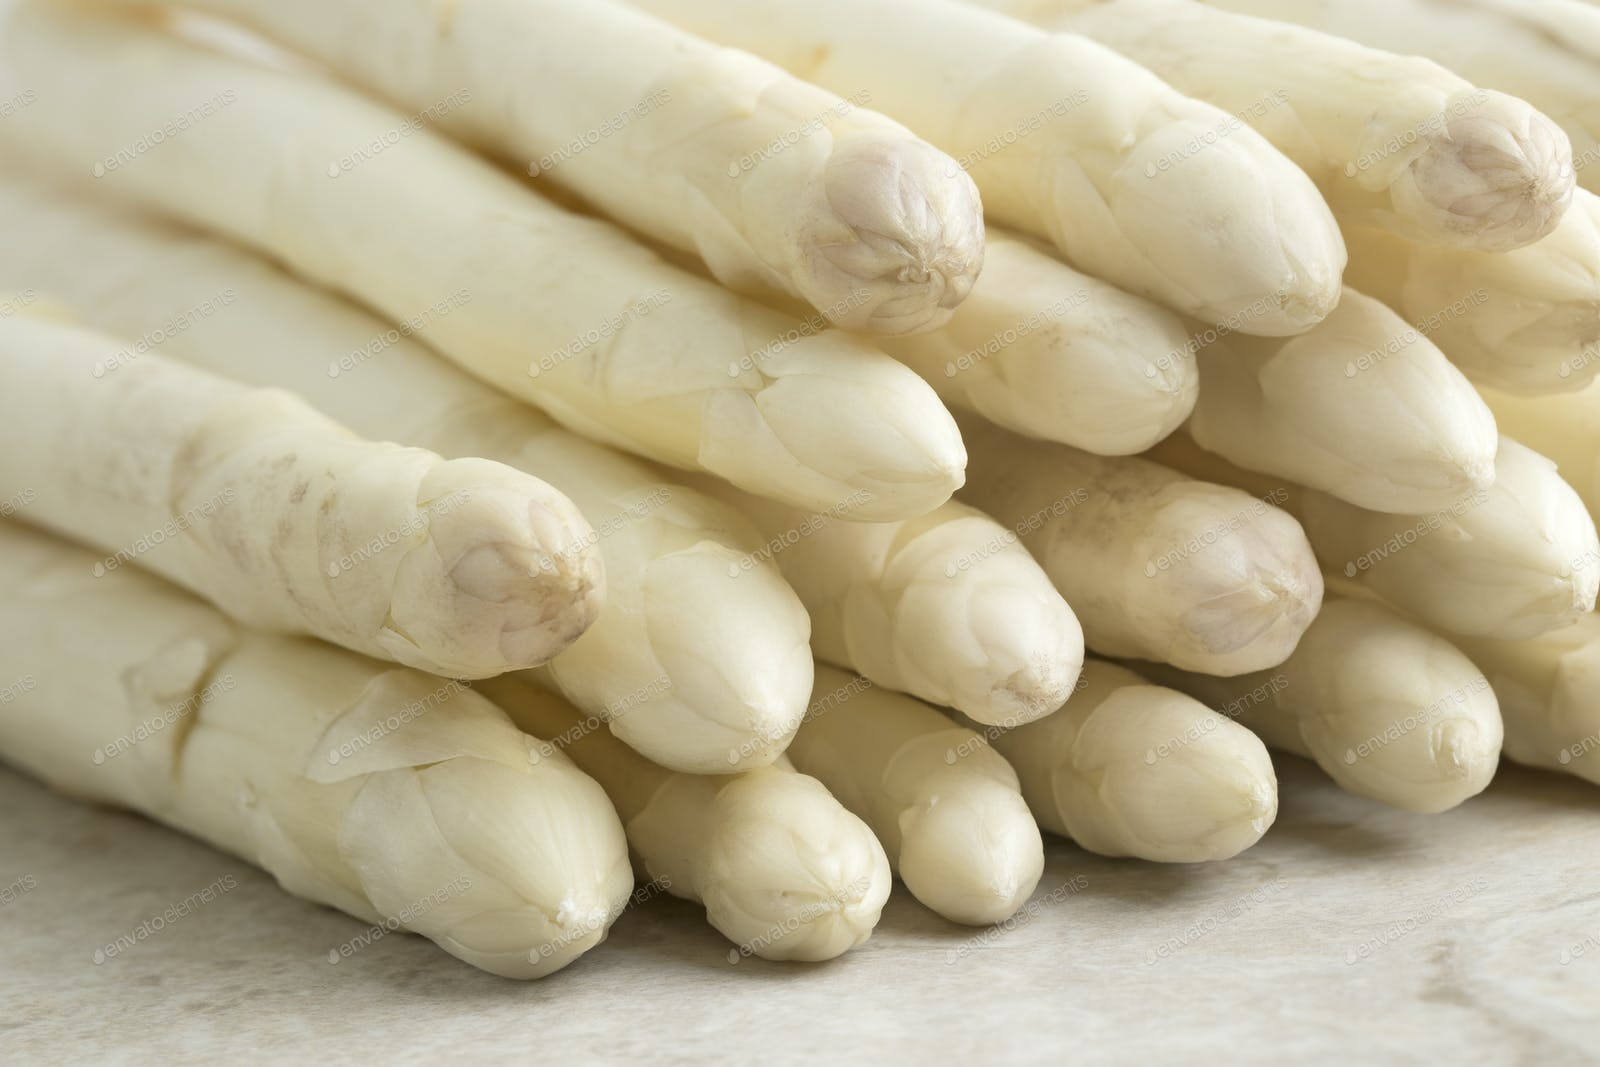 Raw White Asparagus Tips Photo By Picturepartners On Envato Elements